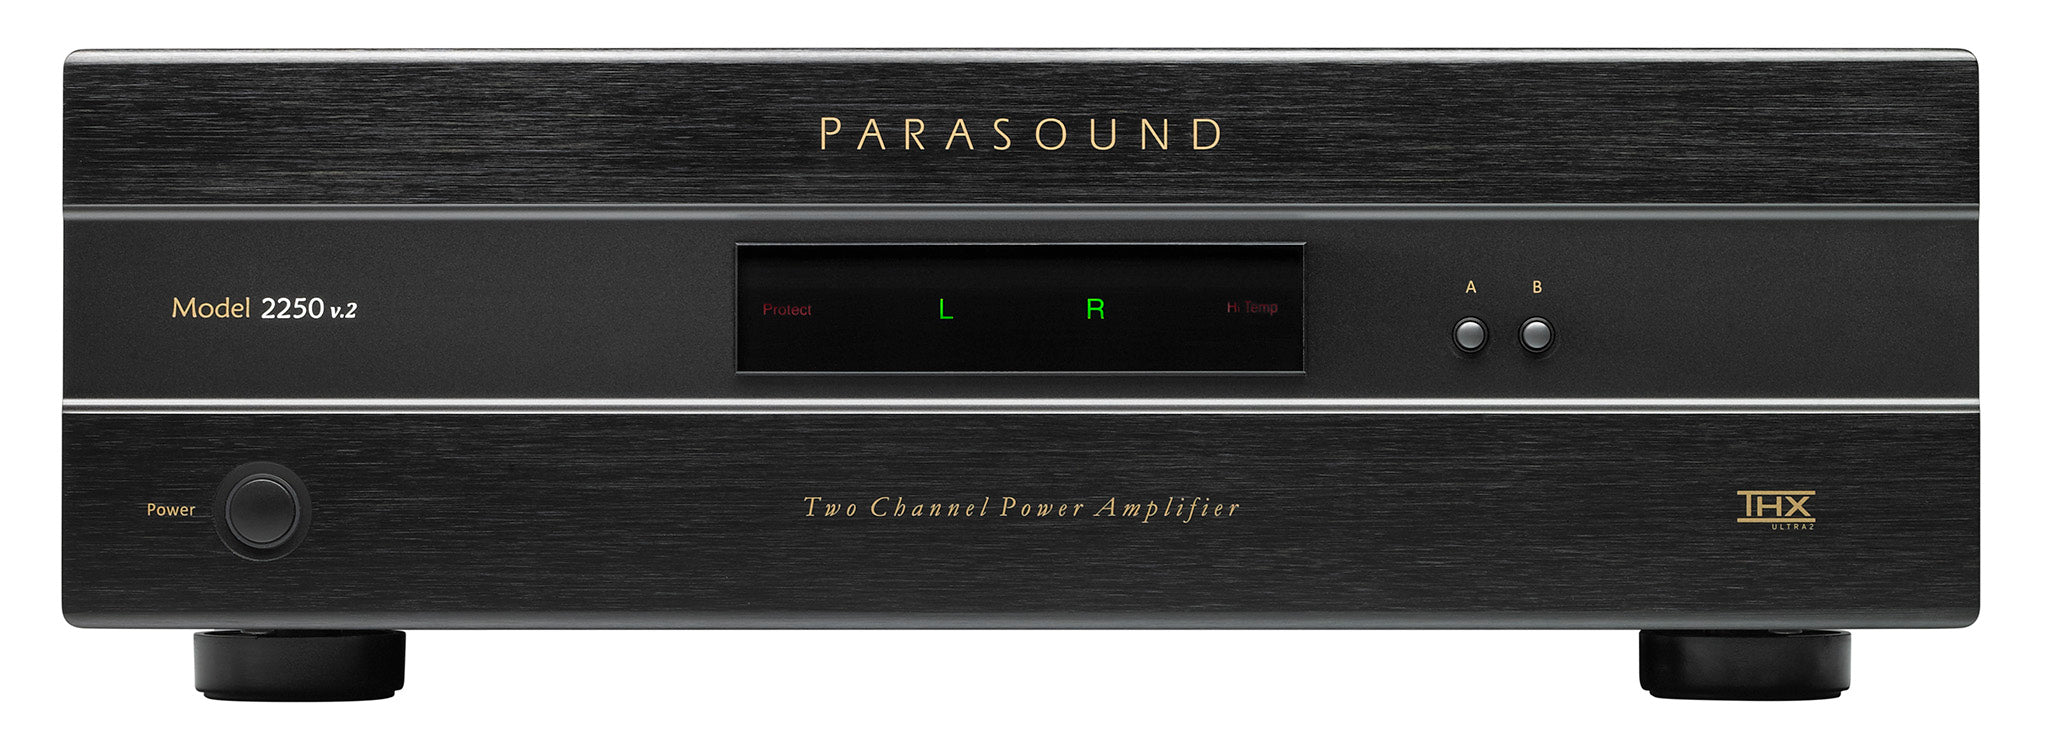 Parasound - 2250 v.2, Parasound, Power Amplifier - Auratech LLC